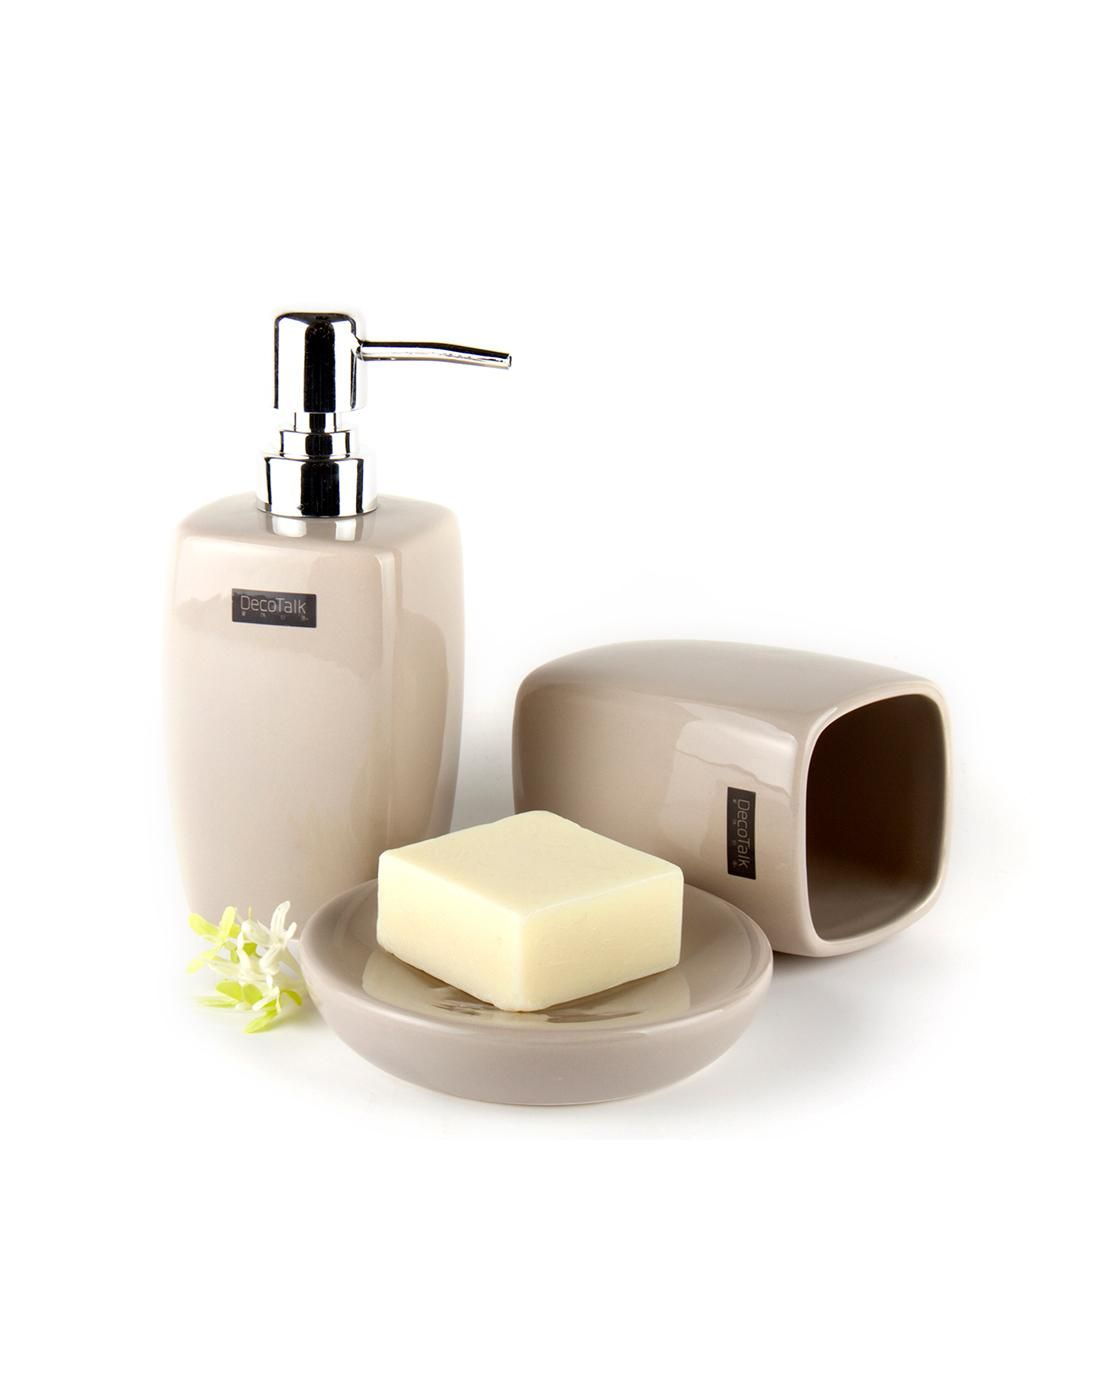 Beige decorative bathroom accessories set. Vipme.com offers high ...